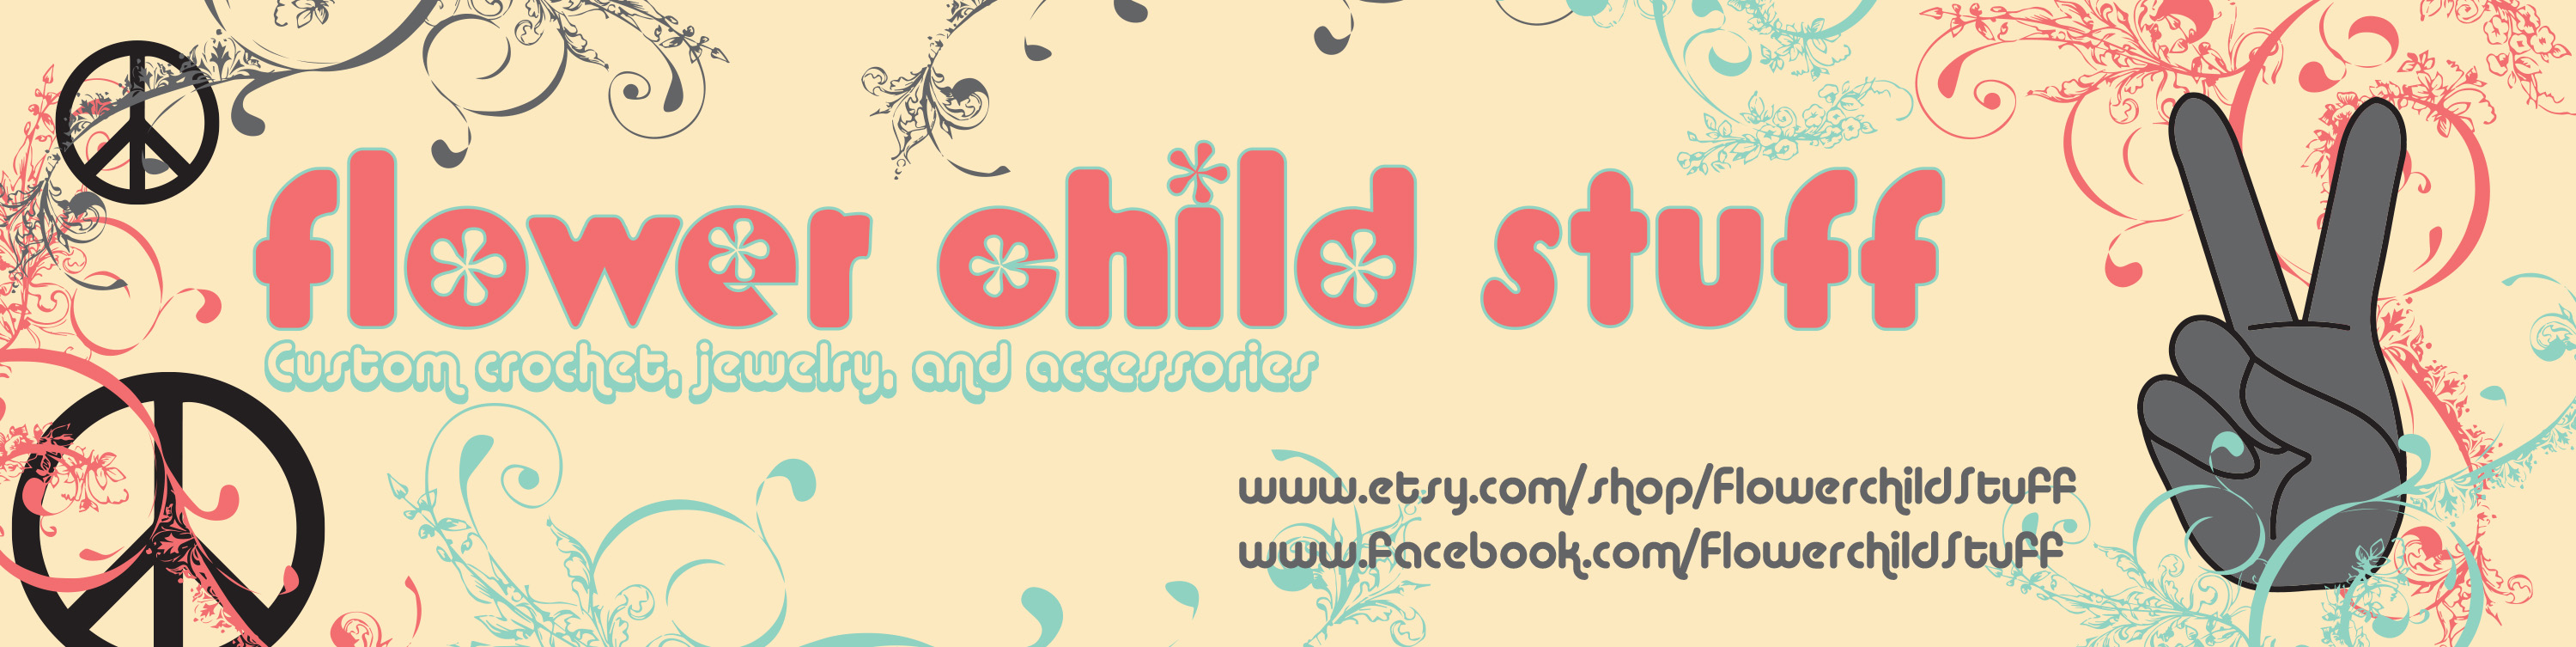 Banner for Flower Child Stuff